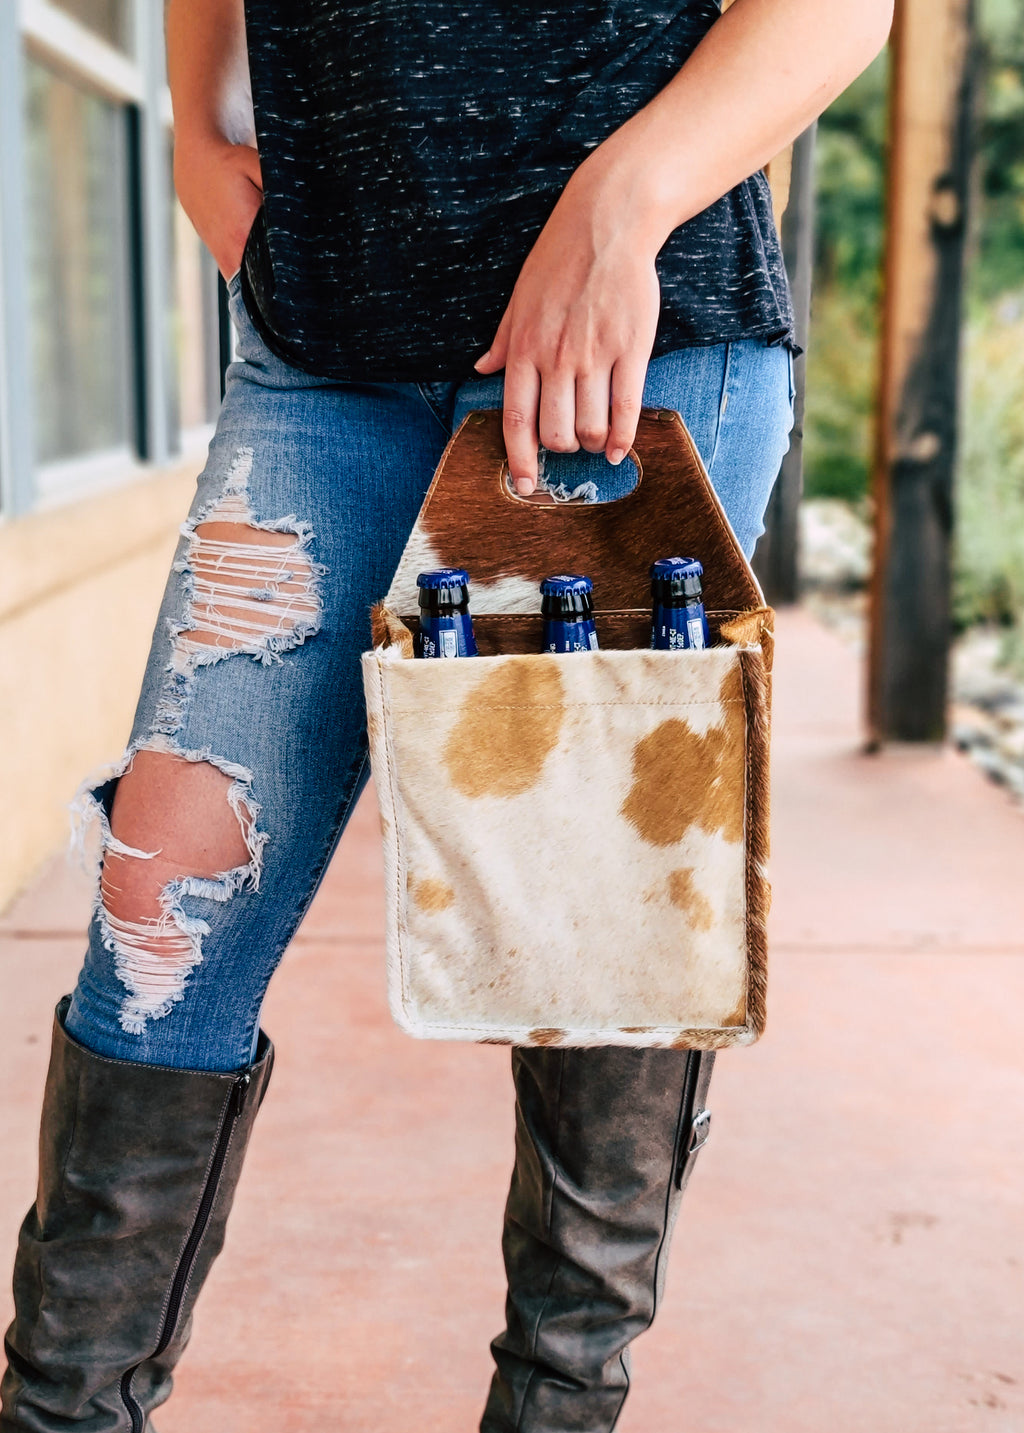 Brown & White Cowhide 6 BottleCan Caddy Taken Outside on Blonde Model